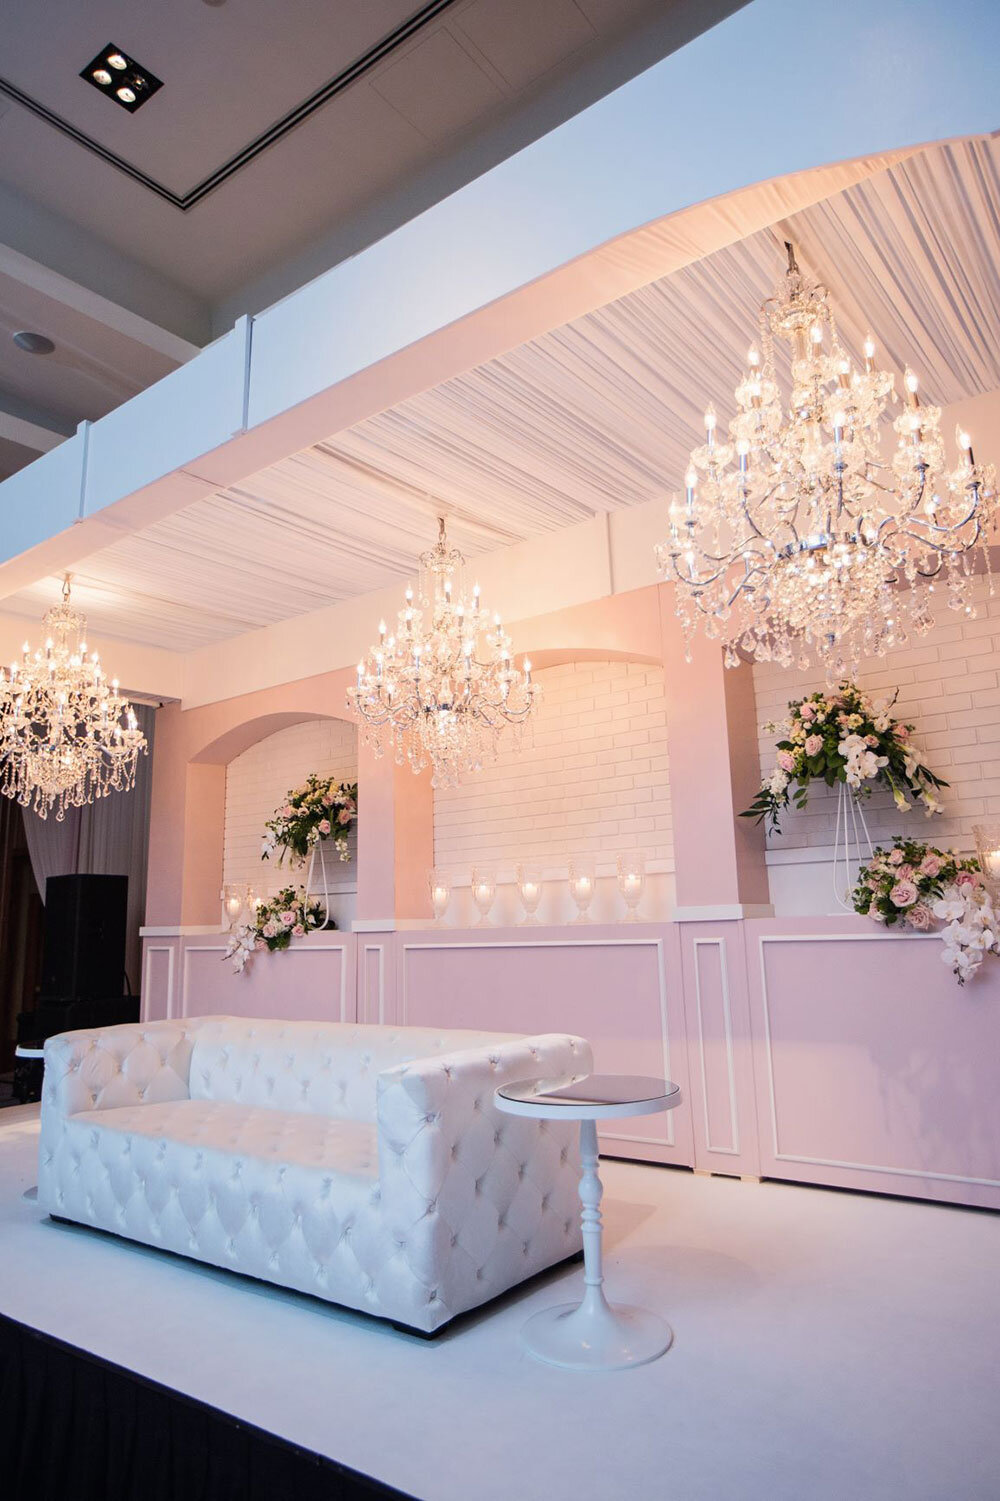 Paras-Events-Modern-Blush-Crystal-Chandeliers-Reception-Backdrop-Ritz-Carlton-Toronto-1.jpg